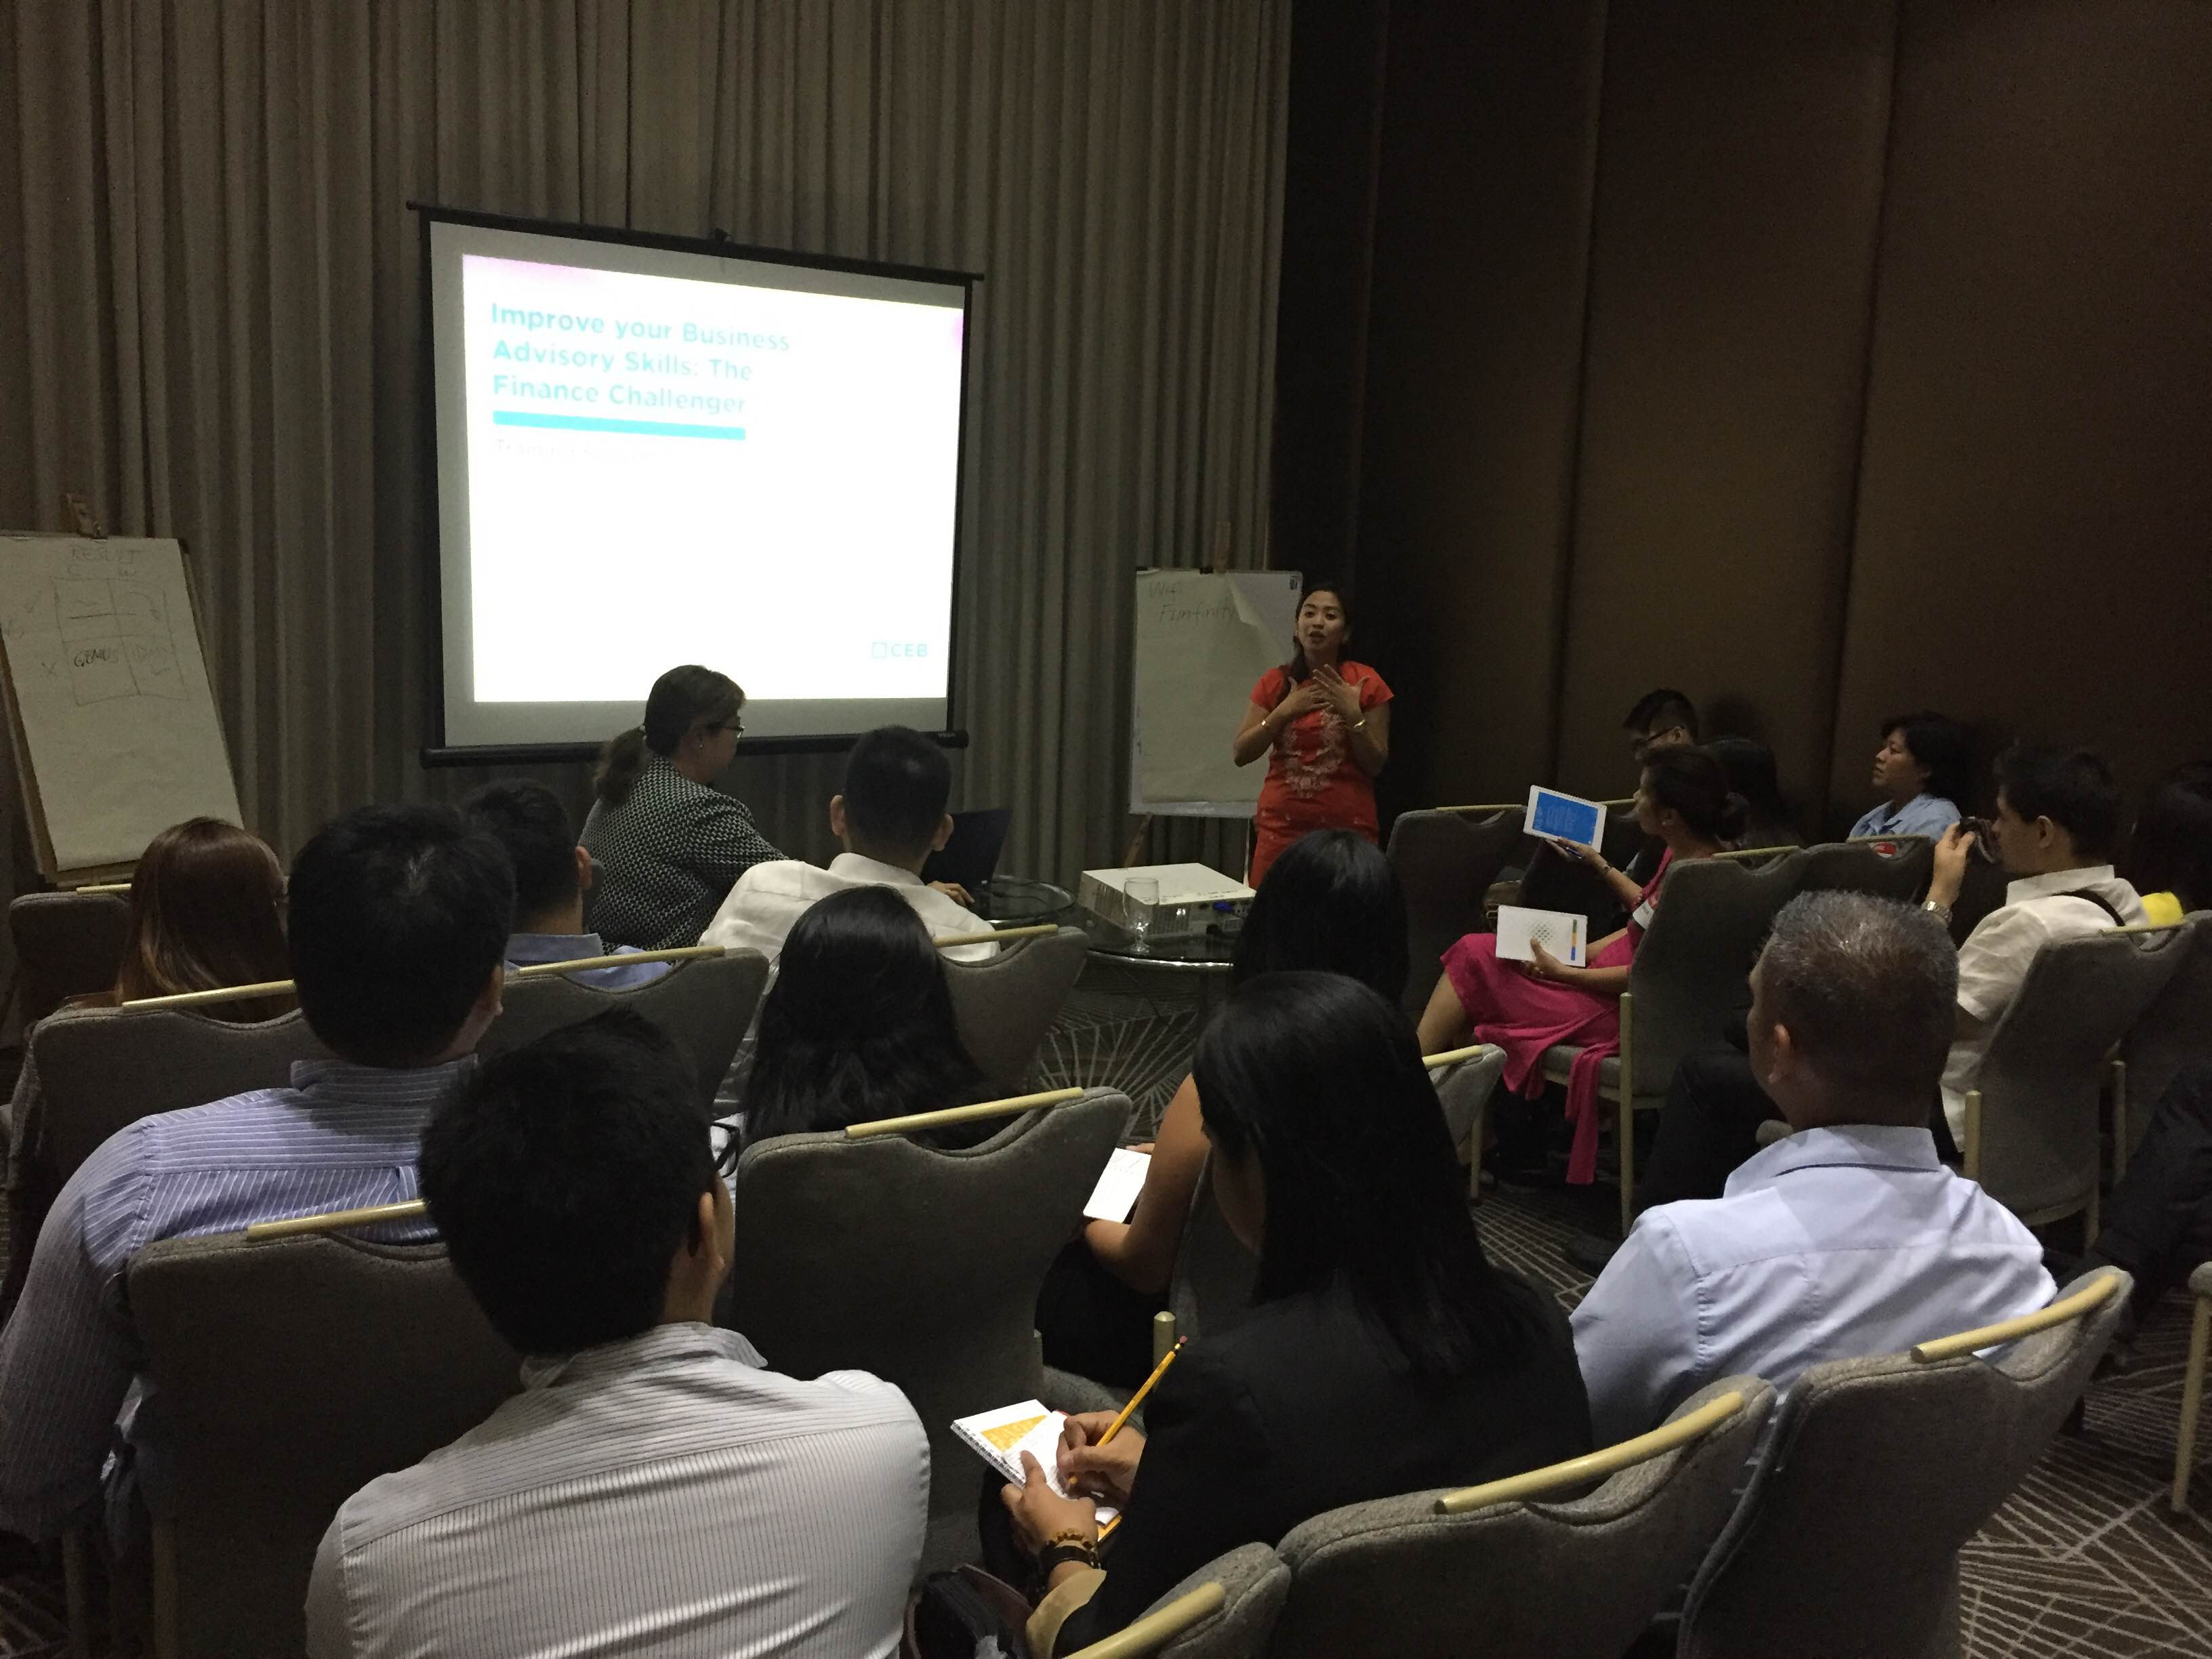 """Finance Mentoring Cluster members look on as AboitizPower CFO and guest speaker Liza Montelibano presents the Finance Challenger Framework at the kick-off session held at the F1 Hotel on April 25."""""""